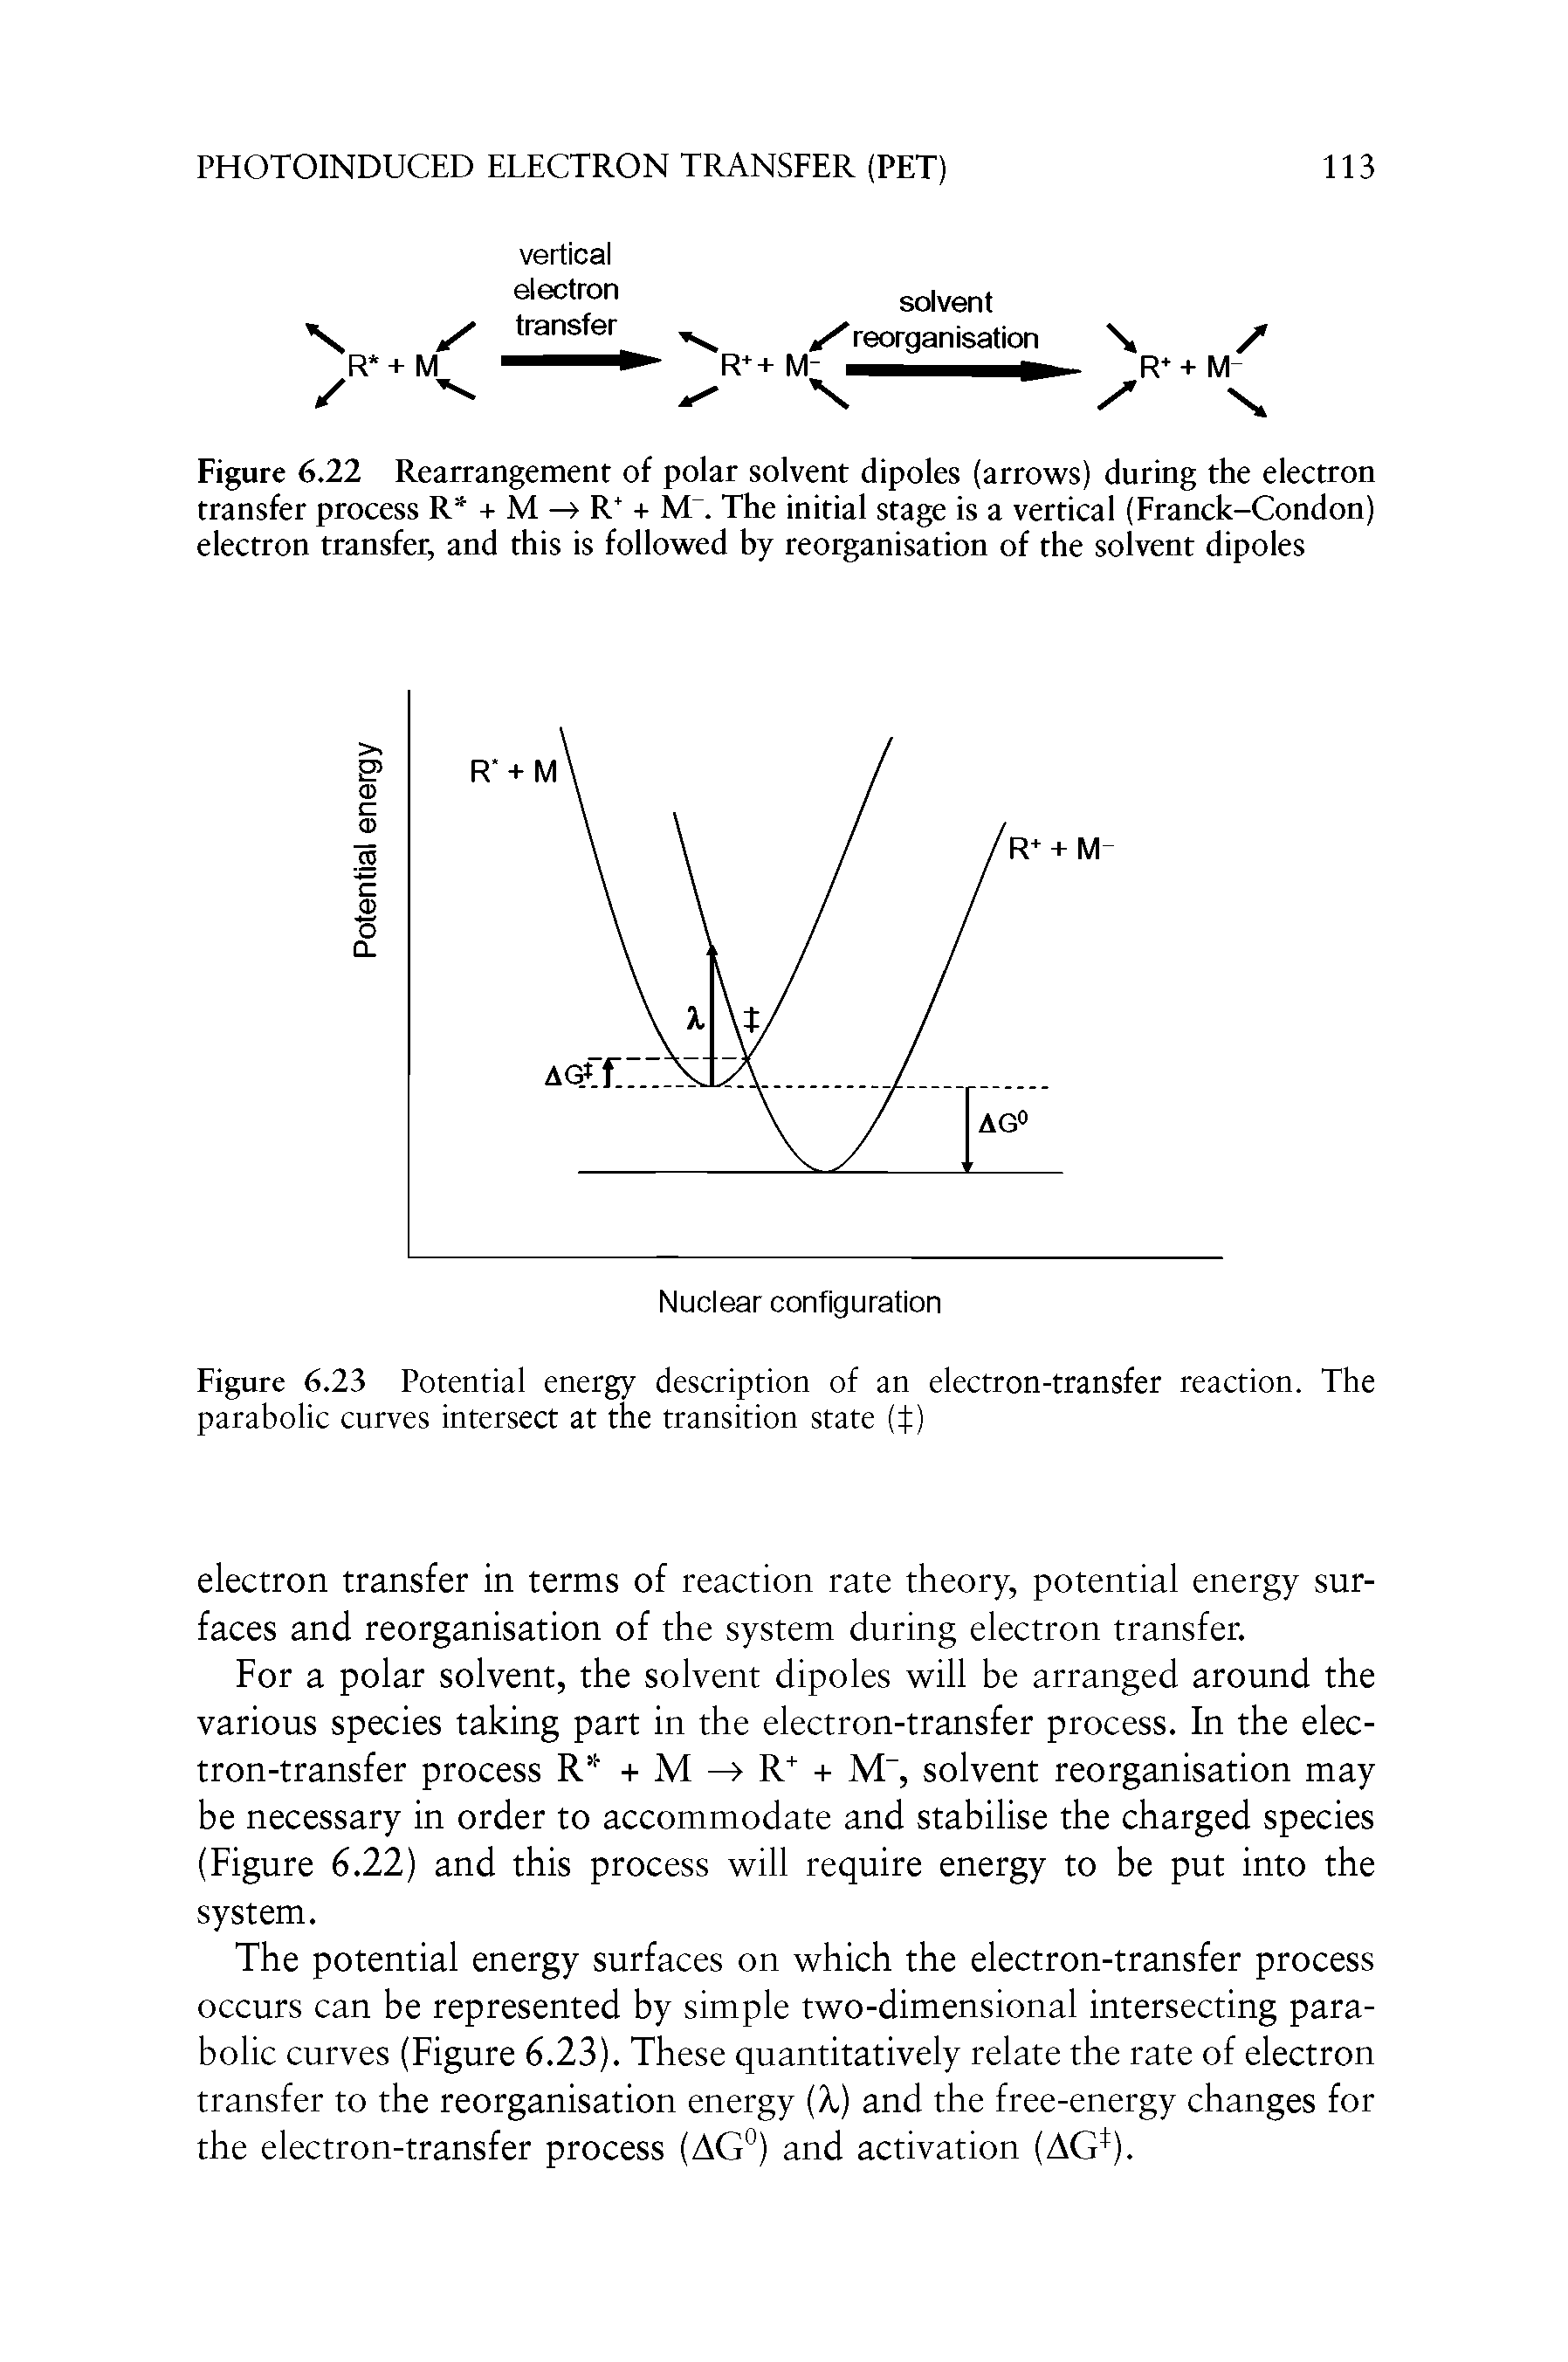 "Figure 6.23 <a href=""/info/potential_energy_description"">Potential energy description</a> of an <a href=""/info/electron_transfer_reactions"">electron-transfer reaction</a>. The parabolic curves intersect at the transition state (if)"